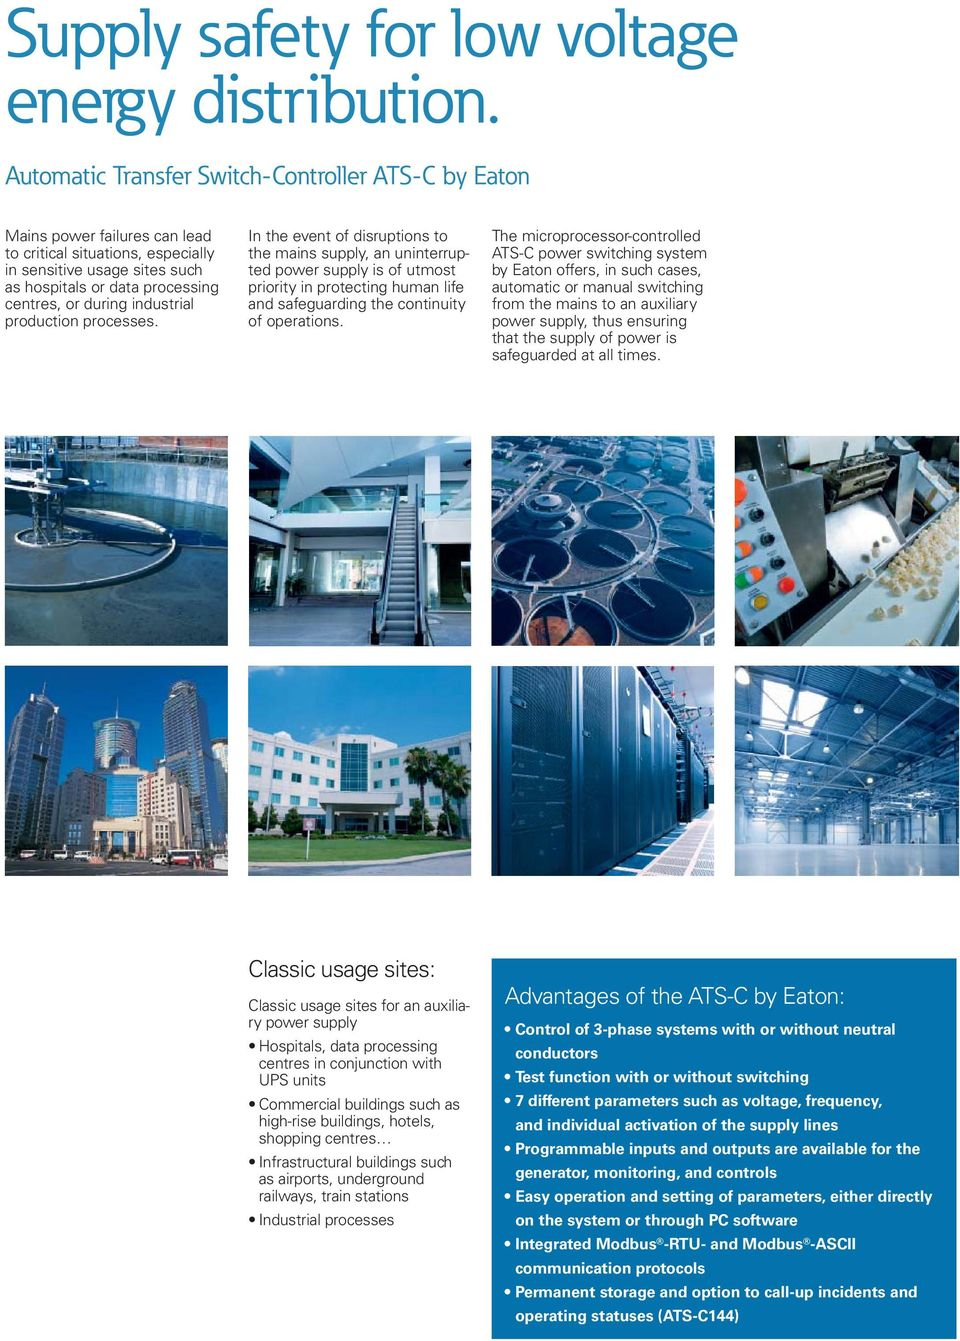 industrial production processes.